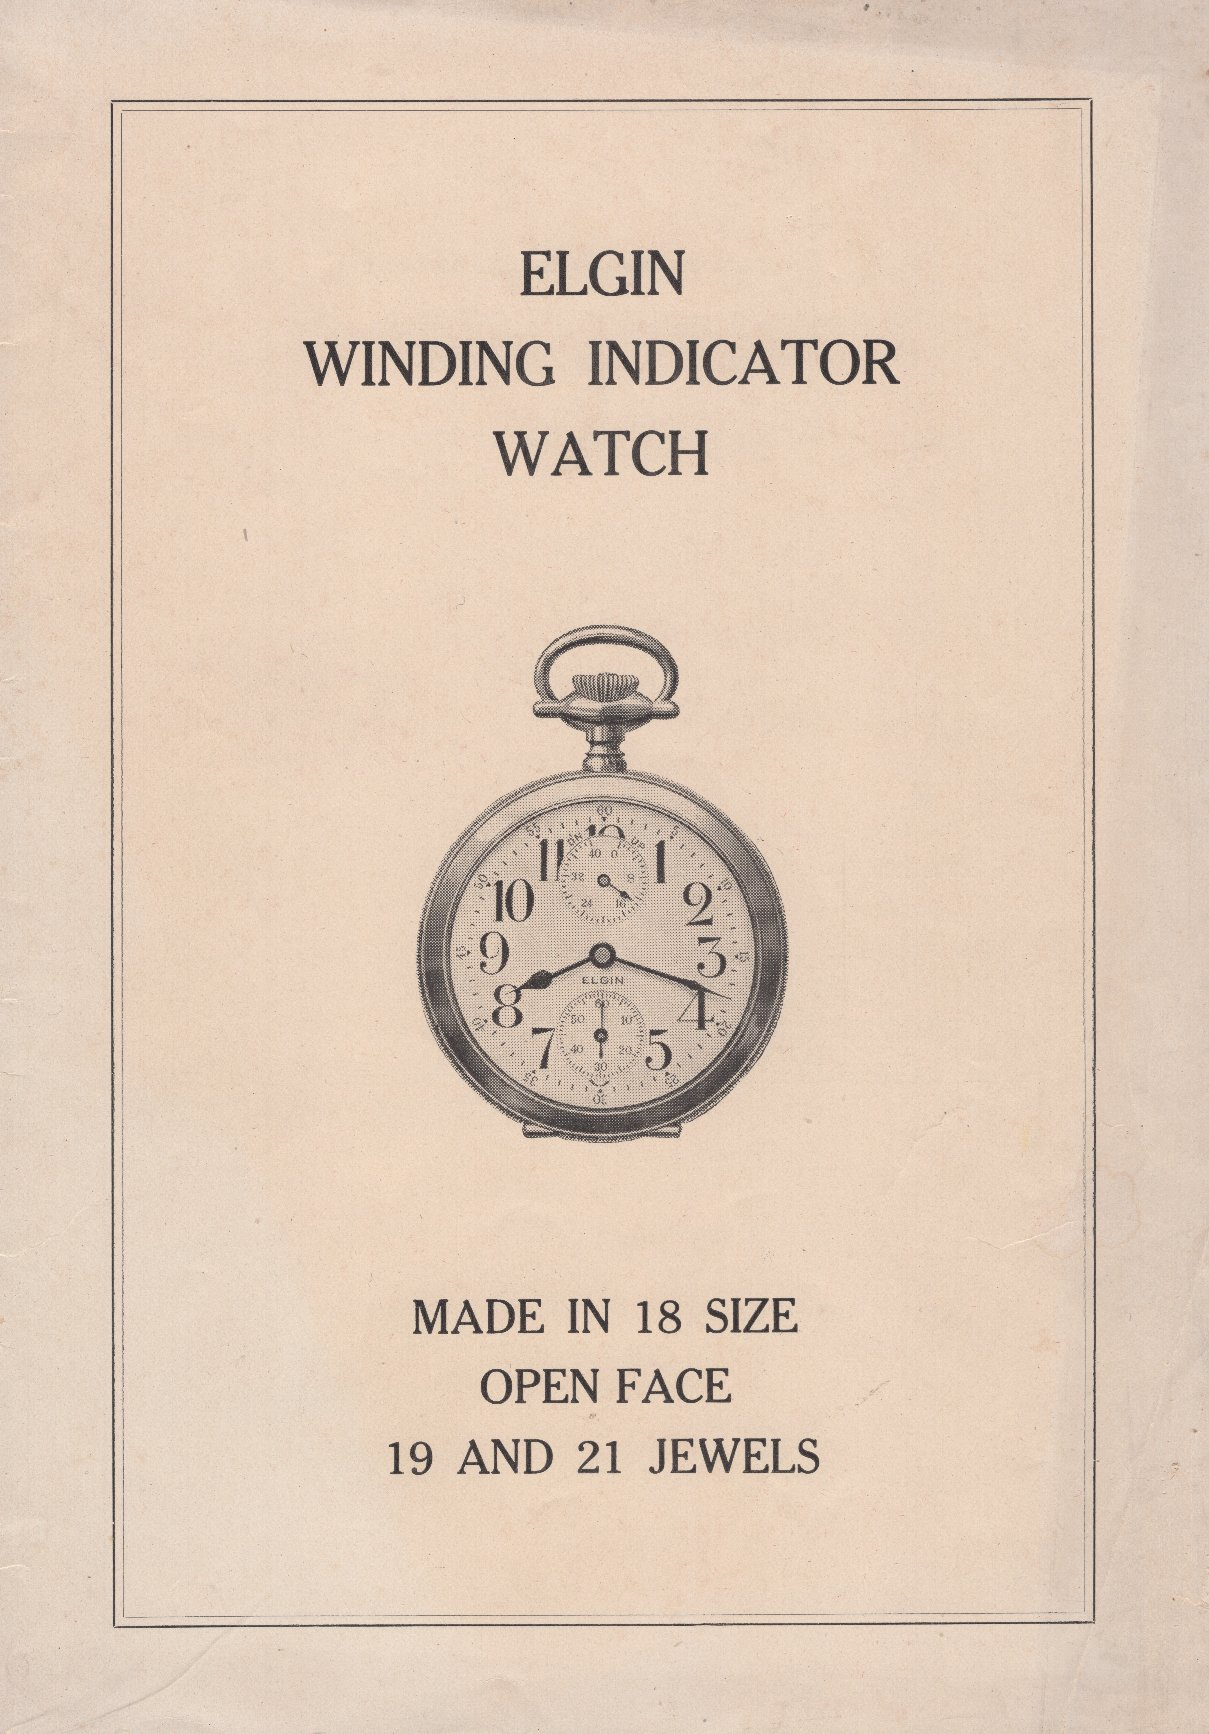 Elgin Winding Indicator Watch Pamphlet Cover Image